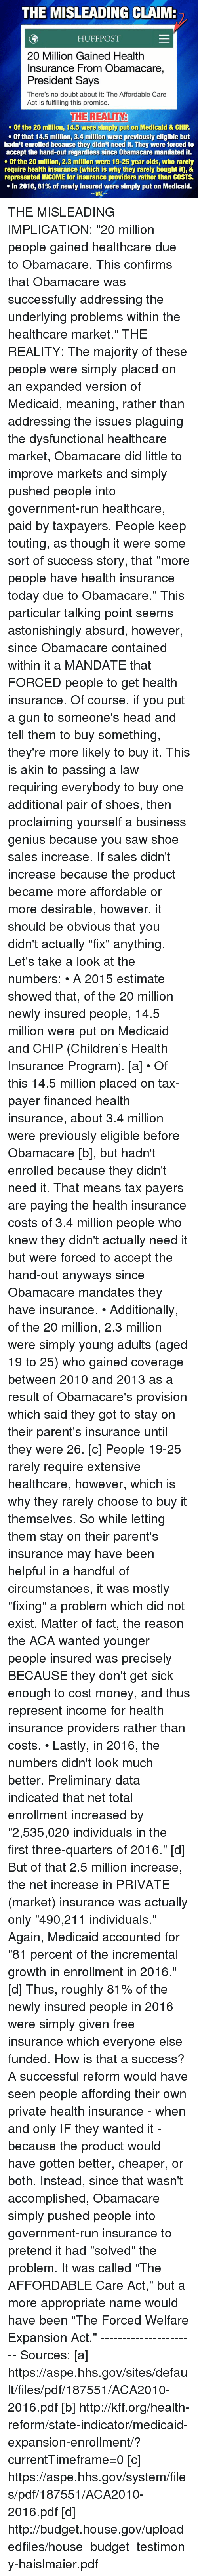 "mandate: THE MISLEADING CLAIMR  HUFF POST  20 Million Gained Health  Insurance From Obamacare,  President Says  There's no doubt about it: The Affordable Care  Act is fulfilling this promise.  THE REALITY  Of the 20 million, 14.5 were simply put on Medicaid & CHIP  Of that 14.5 million, 3.4 million were previously eligible but  hadn't enrolled because they didn't need it. They were forced to  accept the hand-out regardless since Obamacare mandated it.  Of the 20 million, 2.3 million were 19-25 year olds, who rarely  require health insurance (which is why they rarely bought it), &  represented INCOME for insurance providers rather than COSTS.  In 2016, 81% of newly insured were simply put on Medicaid.  WAC THE MISLEADING IMPLICATION: ""20 million people gained healthcare due to Obamacare. This confirms that Obamacare was successfully addressing the underlying problems within the healthcare market.""  THE REALITY: The majority of these people were simply placed on an expanded version of Medicaid, meaning, rather than addressing the issues plaguing the dysfunctional healthcare market, Obamacare did little to improve markets and simply pushed people into government-run healthcare, paid by taxpayers.  People keep touting, as though it were some sort of success story, that ""more people have health insurance today due to Obamacare."" This particular talking point seems astonishingly absurd, however, since Obamacare contained within it a MANDATE that FORCED people to get health insurance. Of course, if you put a gun to someone's head and tell them to buy something, they're more likely to buy it. This is akin to passing a law requiring everybody to buy one additional pair of shoes, then proclaiming yourself a business genius because you saw shoe sales increase. If sales didn't increase because the product became more affordable or more desirable, however, it should be obvious that you didn't actually ""fix"" anything.   Let's take a look at the numbers:  • A 2015 estimate showed that, of the 20 million newly insured people, 14.5 million were put on Medicaid and CHIP (Children's Health Insurance Program). [a]  • Of this 14.5 million placed on tax-payer financed health insurance, about 3.4 million were previously eligible before Obamacare [b], but hadn't enrolled because they didn't need it. That means tax payers are paying the health insurance costs of 3.4 million people who knew they didn't actually need it but were forced to accept the hand-out anyways since Obamacare mandates they have insurance.   • Additionally, of the 20 million, 2.3 million were simply young adults (aged 19 to 25) who gained coverage between 2010 and 2013 as a result of Obamacare's provision which said they got to stay on their parent's insurance until they were 26. [c] People 19-25 rarely require extensive healthcare, however, which is why they rarely choose to buy it themselves. So while letting them stay on their parent's insurance may have been helpful in a handful of circumstances, it was mostly ""fixing"" a problem which did not exist. Matter of fact, the reason the ACA wanted younger people insured was precisely BECAUSE they don't get sick enough to cost money, and thus represent income for health insurance providers rather than costs.    • Lastly, in 2016, the numbers didn't look much better. Preliminary data indicated that net total enrollment increased by ""2,535,020 individuals in the first three-quarters of 2016."" [d] But of that 2.5 million increase, the net increase in PRIVATE (market) insurance was actually only ""490,211 individuals."" Again, Medicaid accounted for ""81 percent of the incremental growth in enrollment in 2016."" [d]  Thus, roughly 81% of the newly insured people in 2016 were simply given free insurance which everyone else funded. How is that a success? A successful reform would have seen people affording their own private health insurance - when and only IF they wanted it - because the product would have gotten better, cheaper, or both. Instead, since that wasn't accomplished, Obamacare simply pushed people into government-run insurance to pretend it had ""solved"" the problem. It was called ""The AFFORDABLE Care Act,"" but a more appropriate name would have been ""The Forced Welfare Expansion Act."" ---------------------- Sources: [a] https://aspe.hhs.gov/sites/default/files/pdf/187551/ACA2010-2016.pdf  [b] http://kff.org/health-reform/state-indicator/medicaid-expansion-enrollment/?currentTimeframe=0  [c] https://aspe.hhs.gov/system/files/pdf/187551/ACA2010-2016.pdf  [d] http://budget.house.gov/uploadedfiles/house_budget_testimony-haislmaier.pdf"